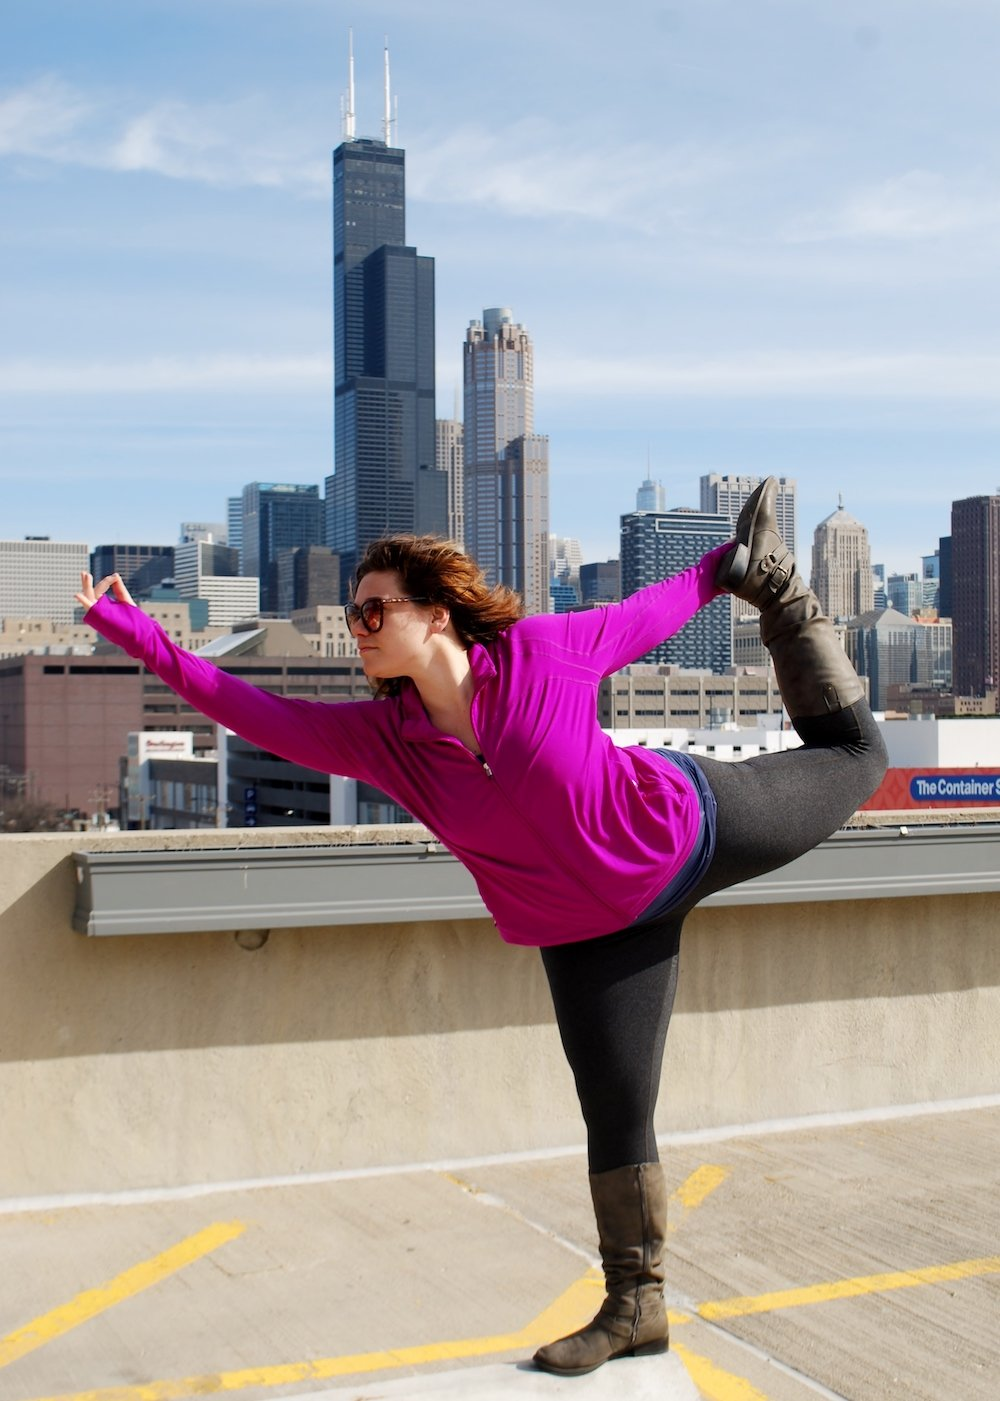 Lindsay Madison in a yoga post standing on top of a parking garage over looking a city